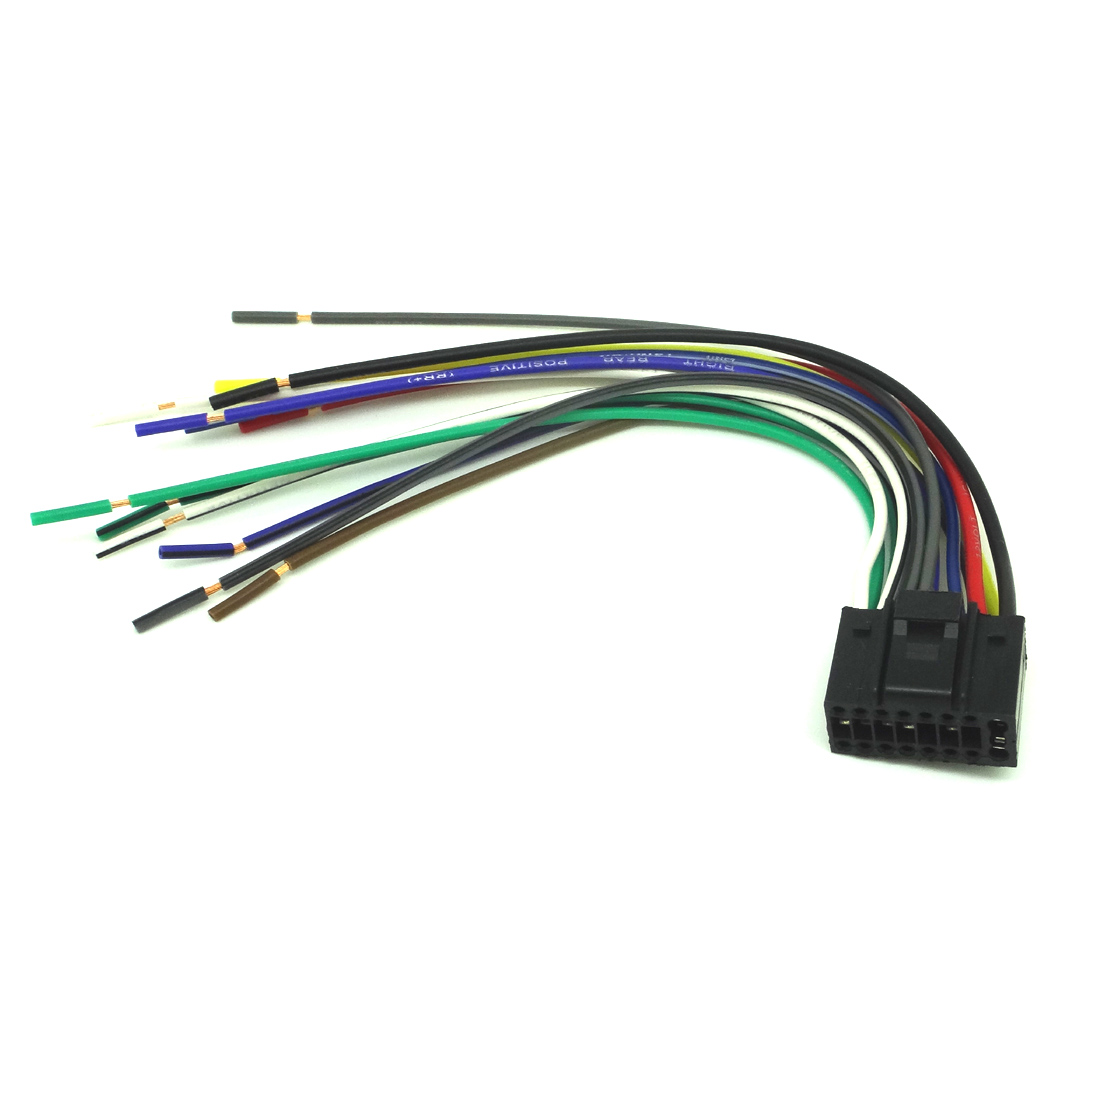 small resolution of player 16 pin radio car audio stereo wire harness for kenwood kdc rh aliexpress com kenwood kdc 217 manual kenwood kdc 135 wiring diagram